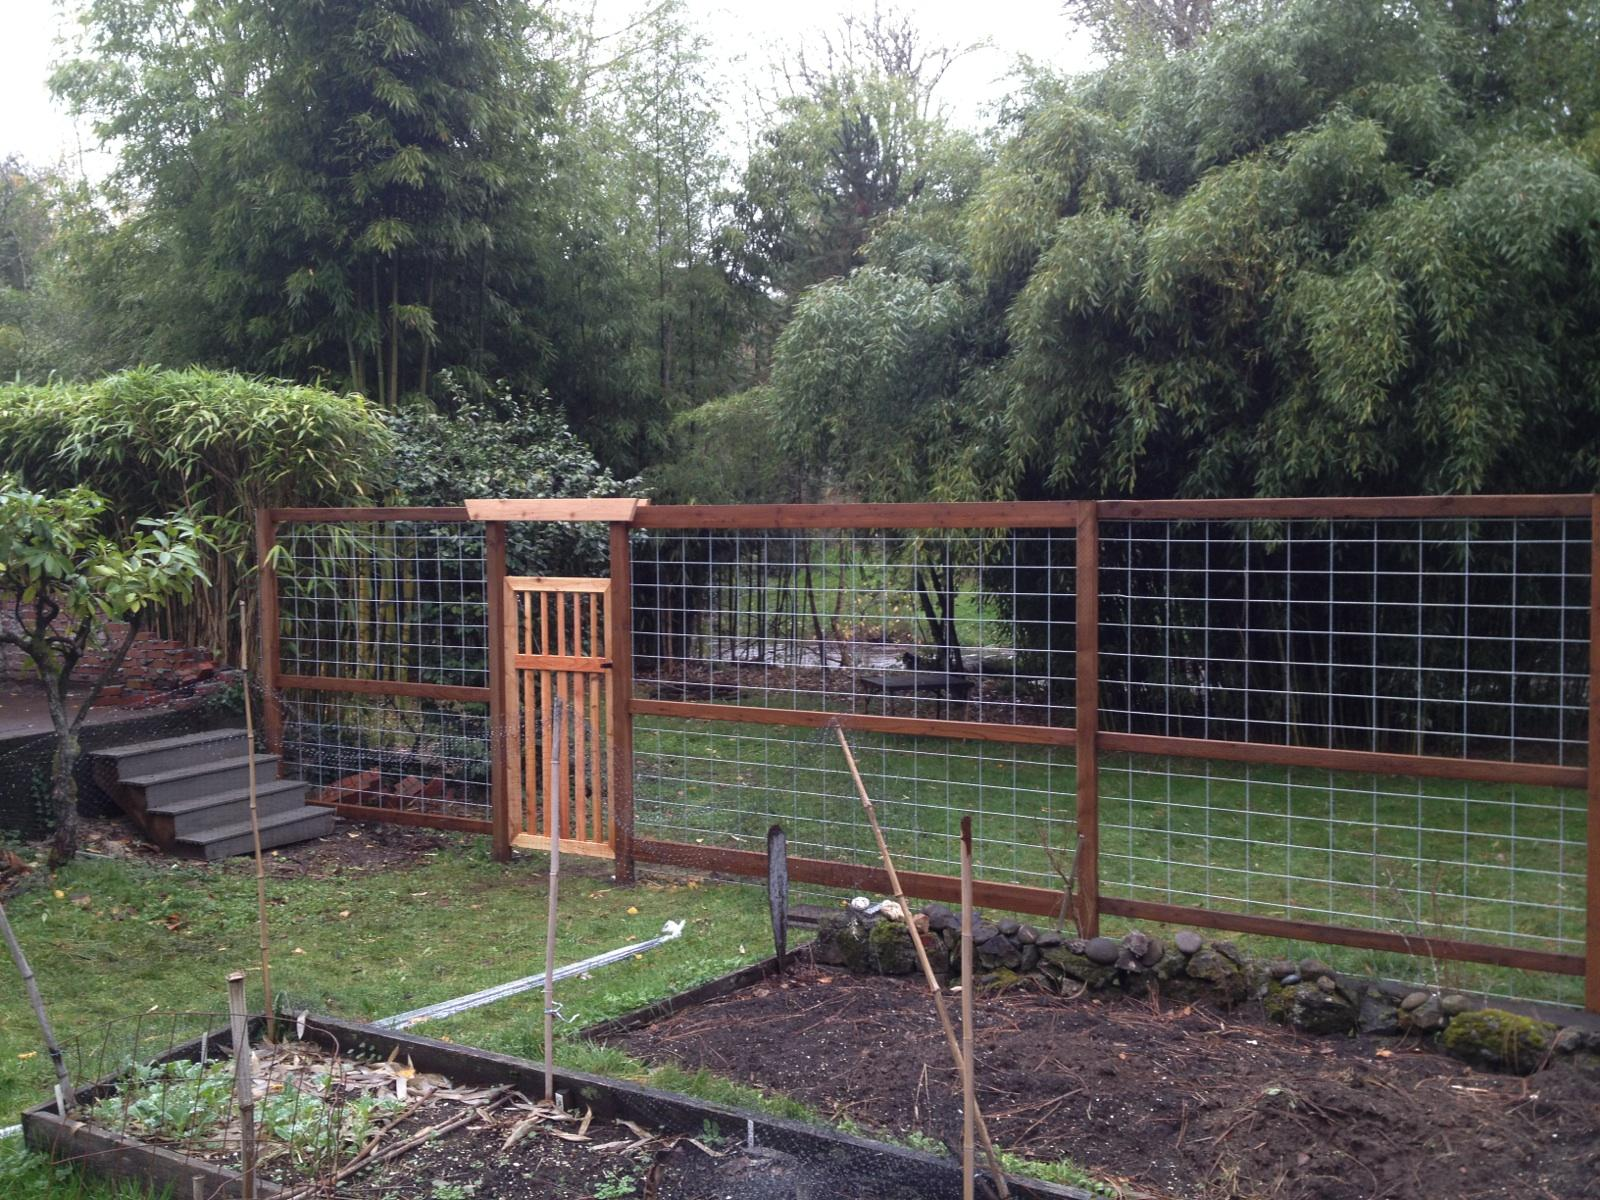 Tall Garden fence to keep the deer out.